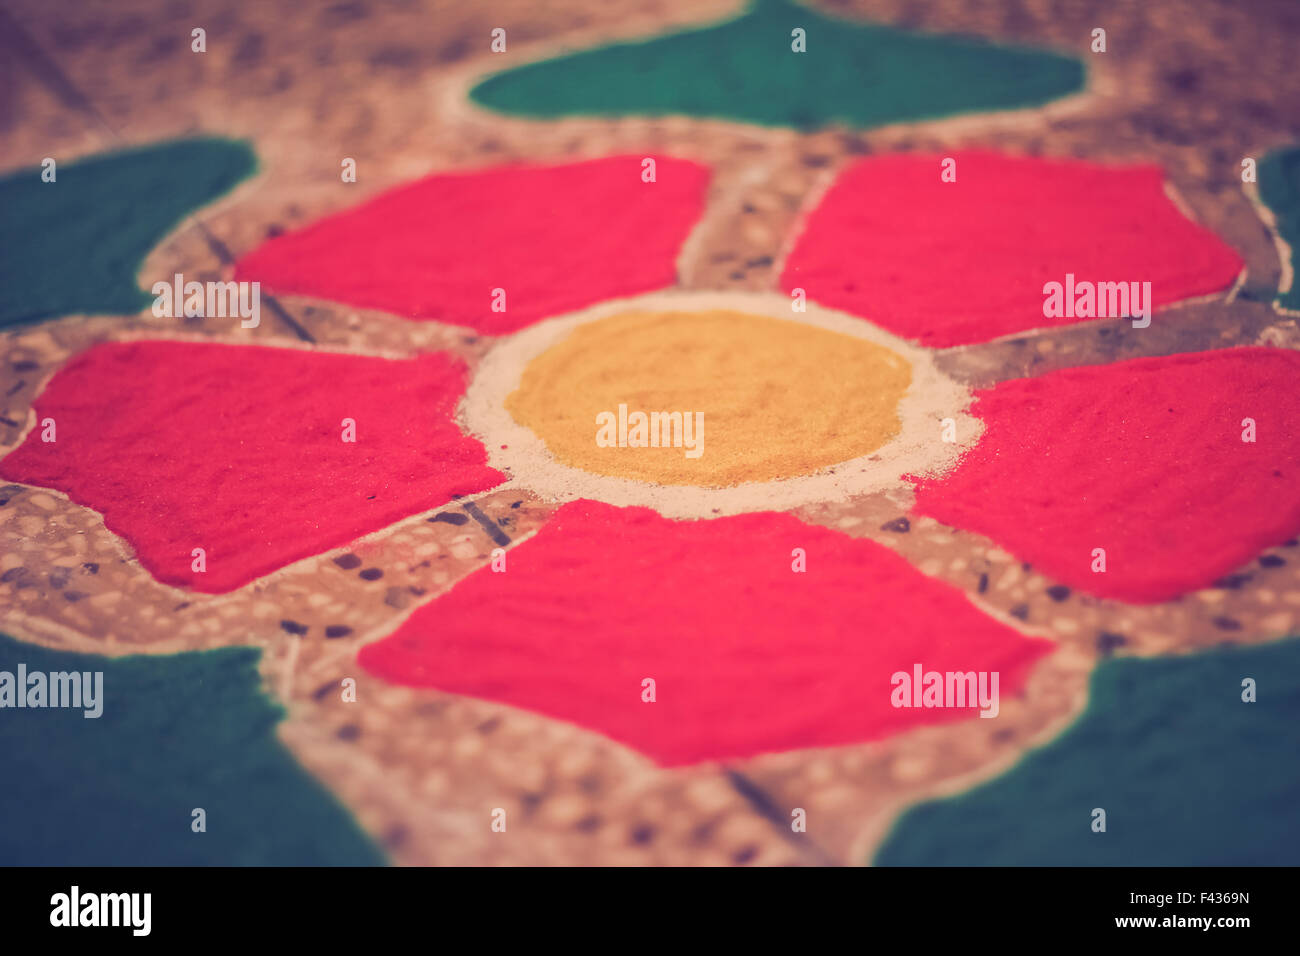 skillful rangoli for diwali celebration - Stock Image